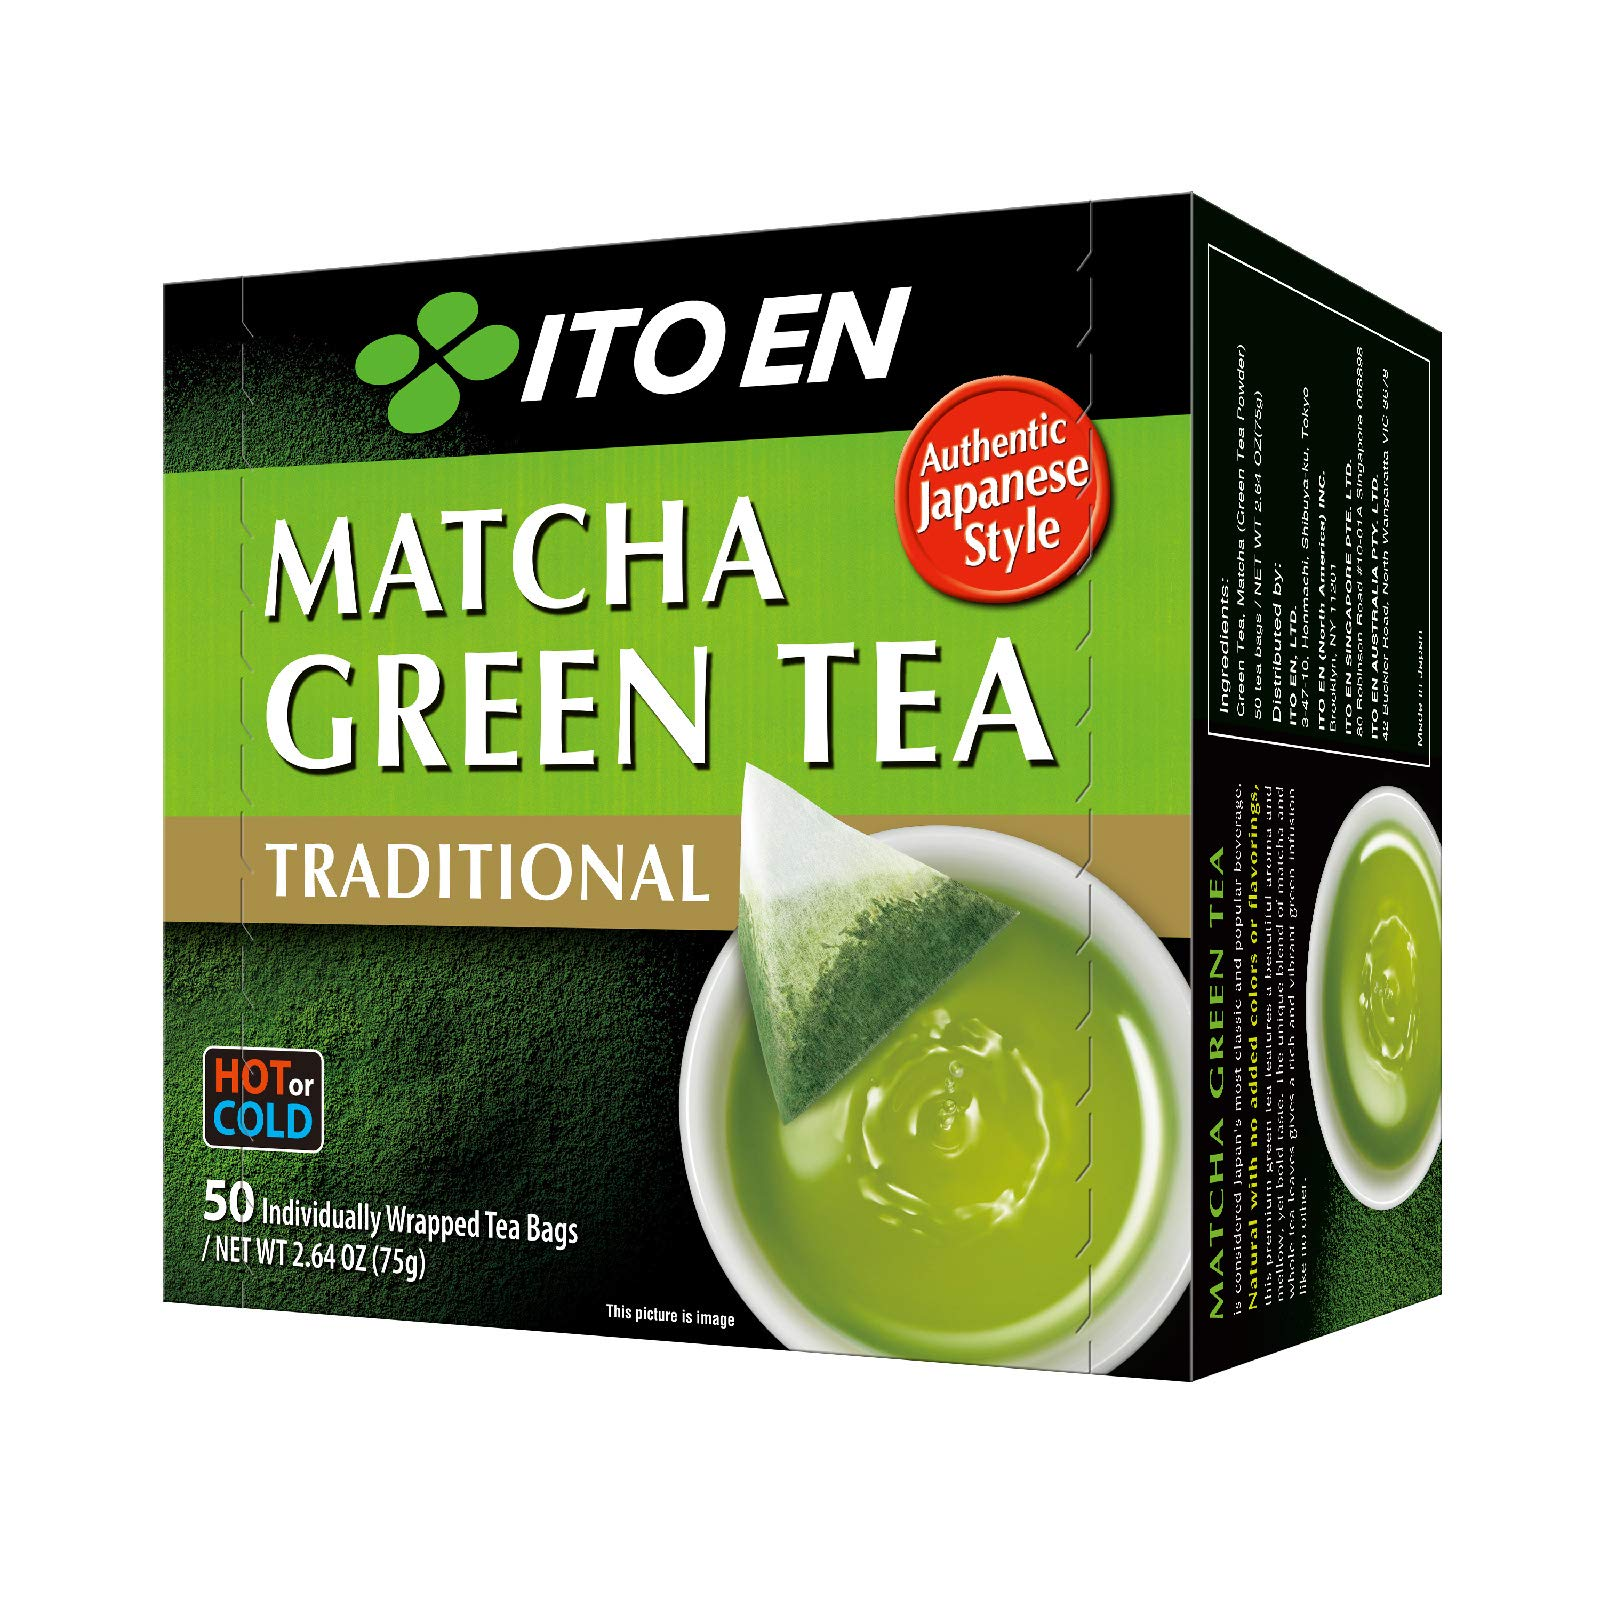 Ito En Traditional Matcha Green Tea 50 Count Zero Calories, Caffeinated